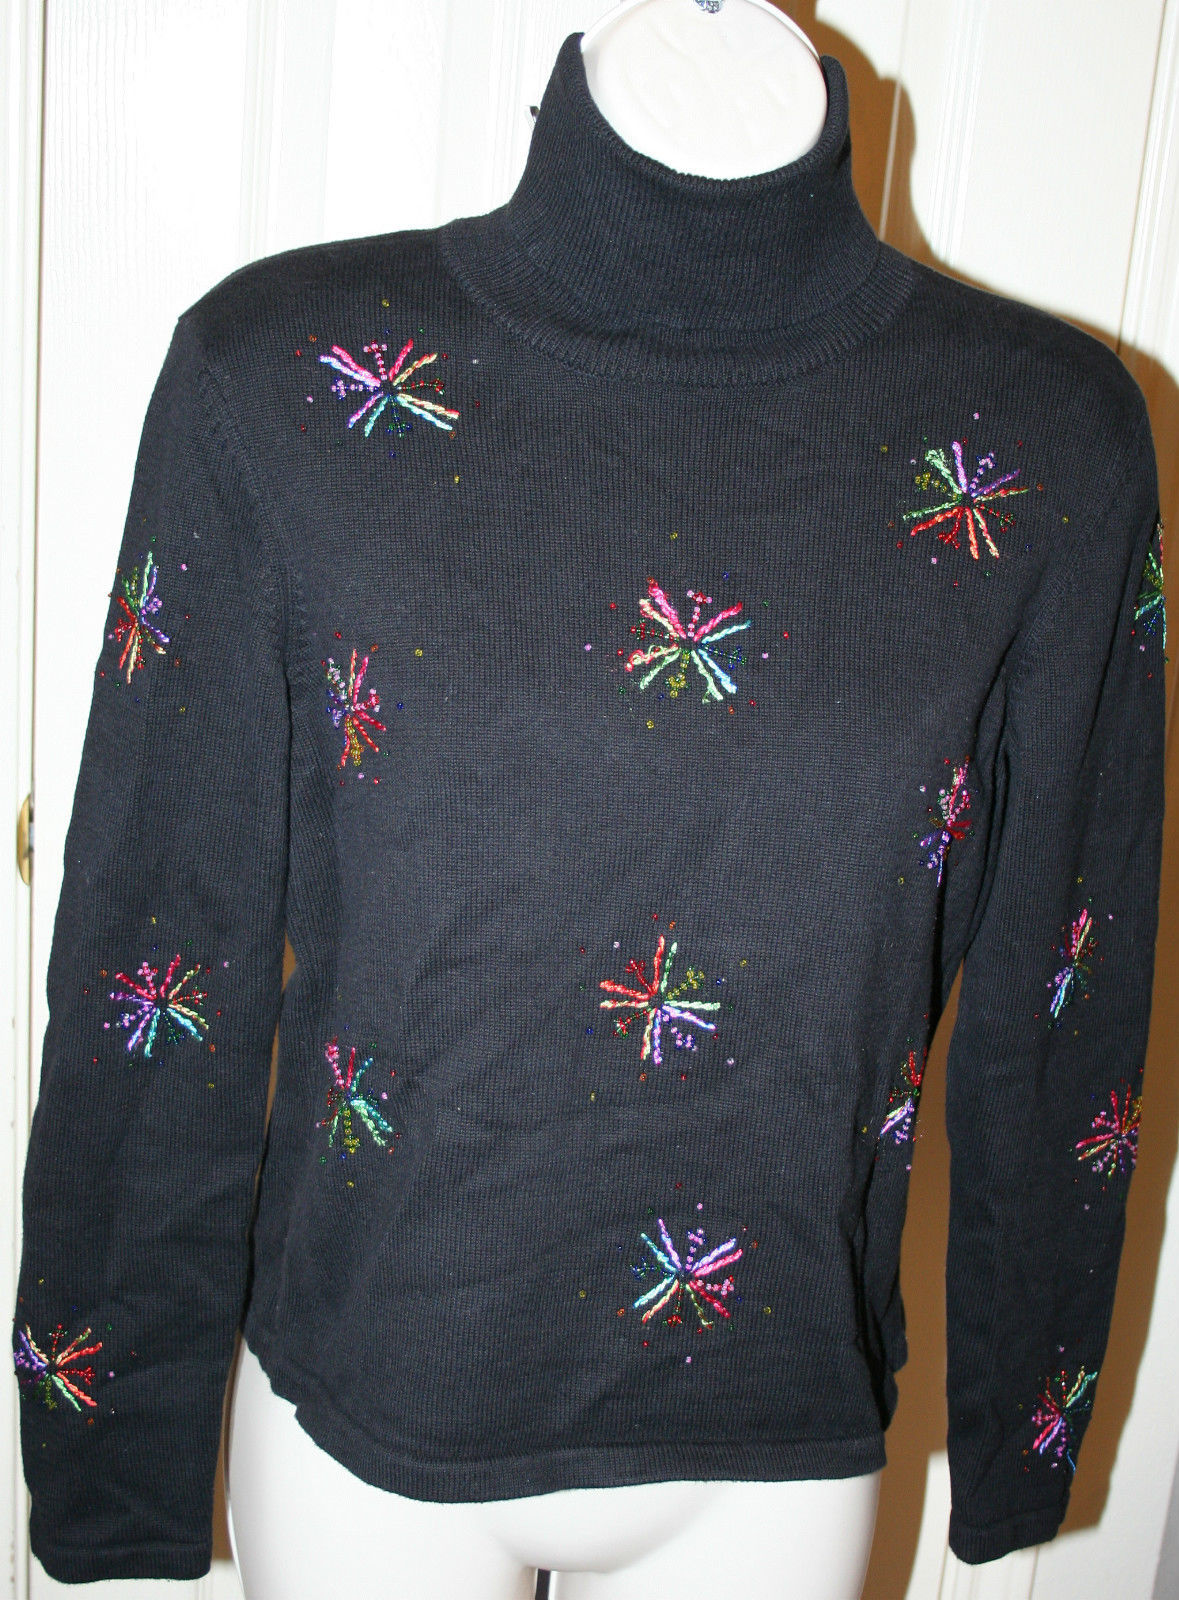 Talbots Petites Black Beaded Starbursts Colored Threads Sweater Turtleneck